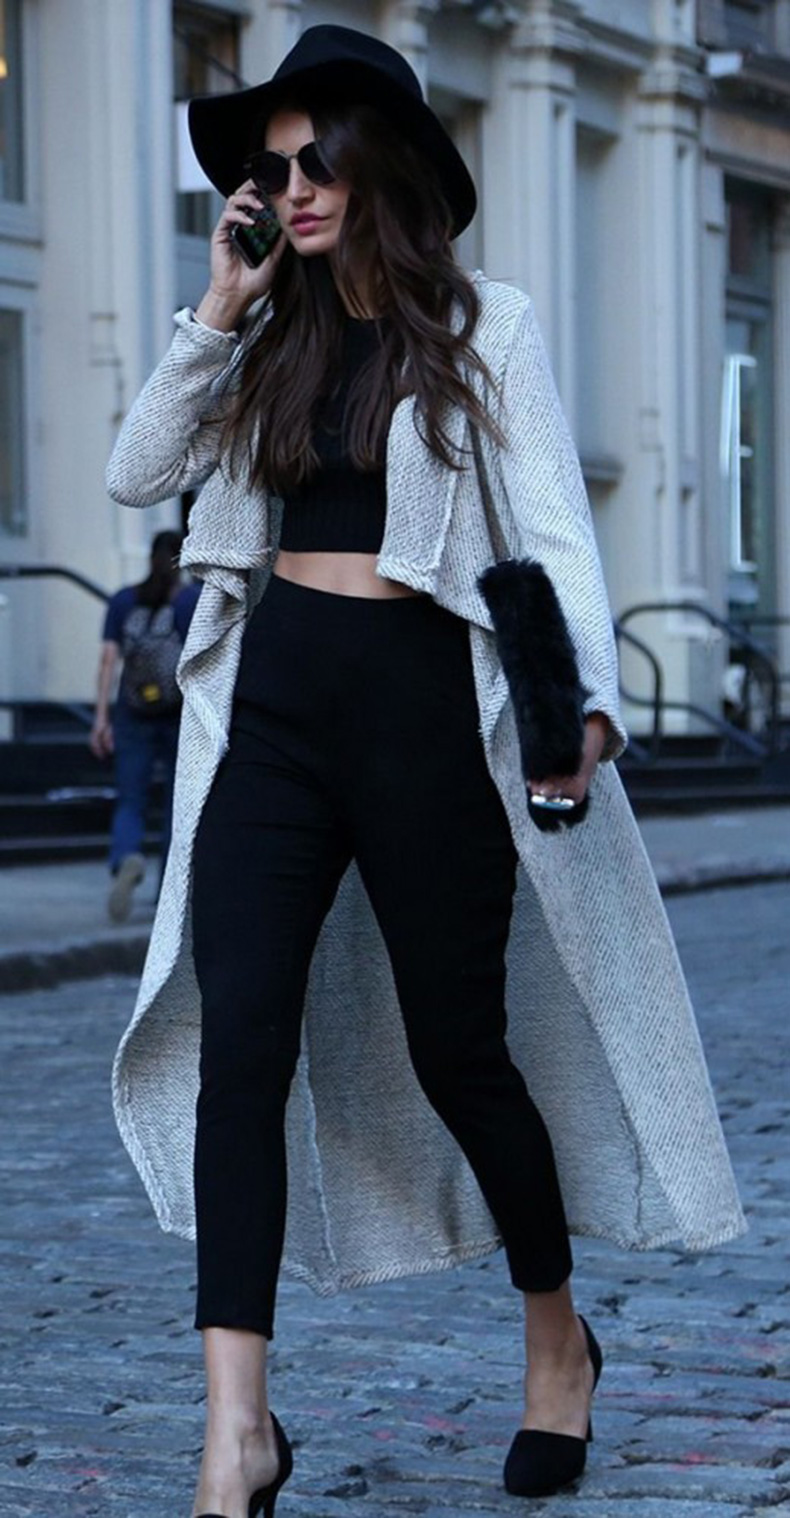 winter-crop-top-outfit-idea-520x999